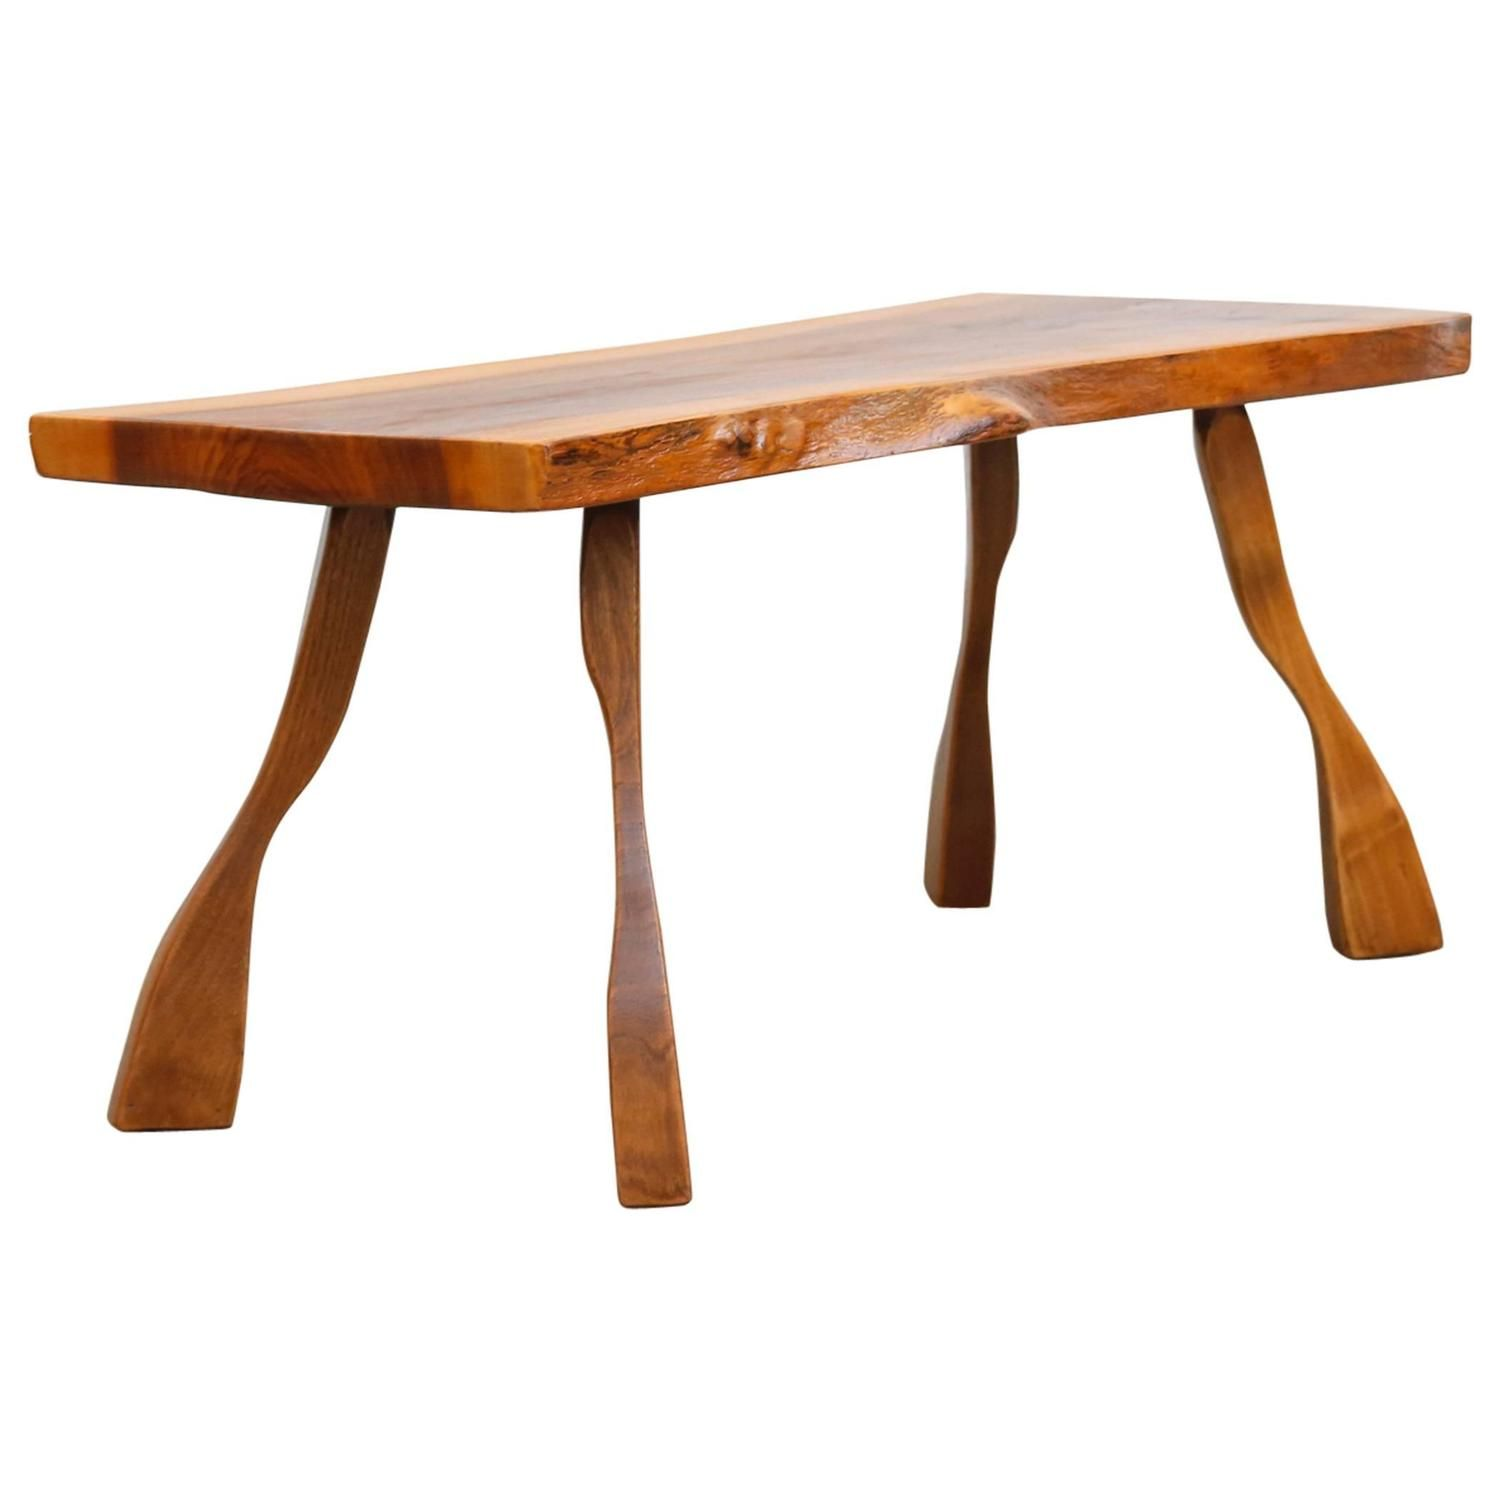 Baby Nakashima Style Wood Plank Occasional Table | From a unique collection of antique and modern tables at https://www.1stdibs.com/furniture/tables/tables/